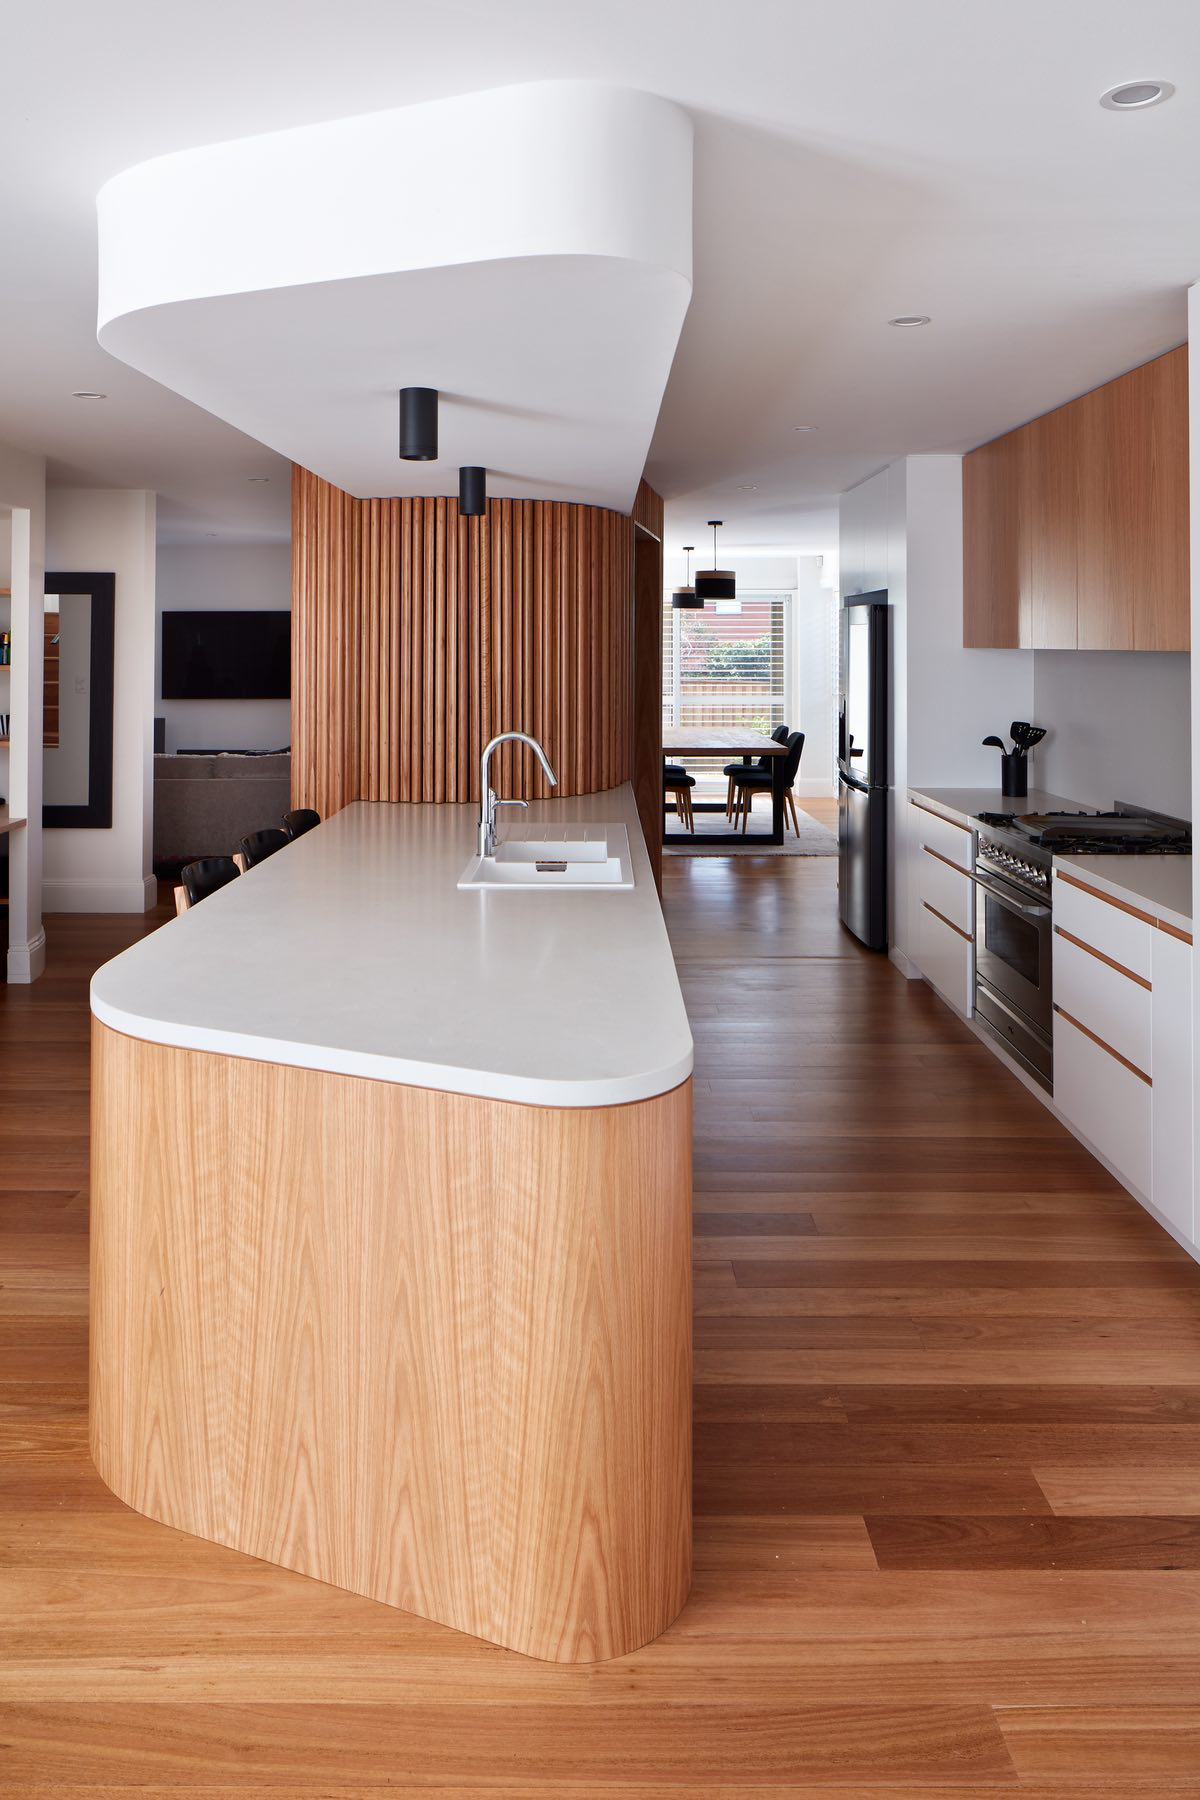 the kitchen of the home